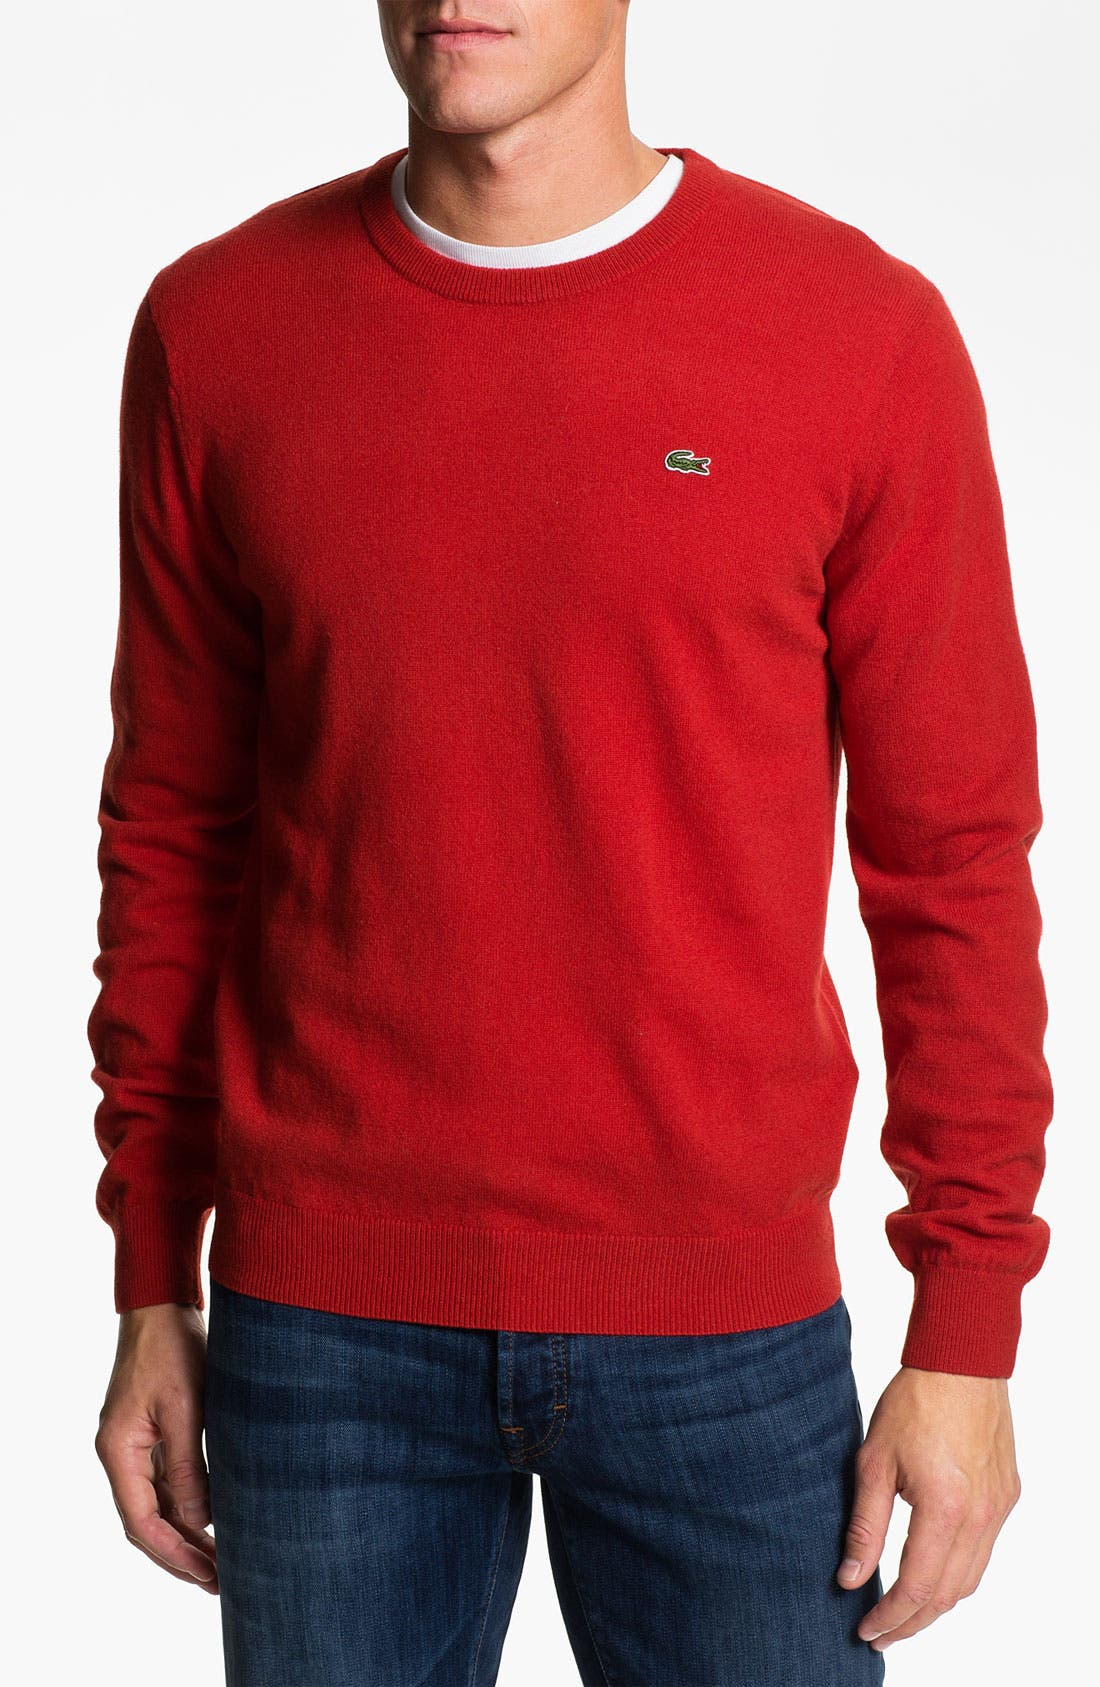 Alternate Image 1 Selected - Lacoste Crewneck Wool Sweater